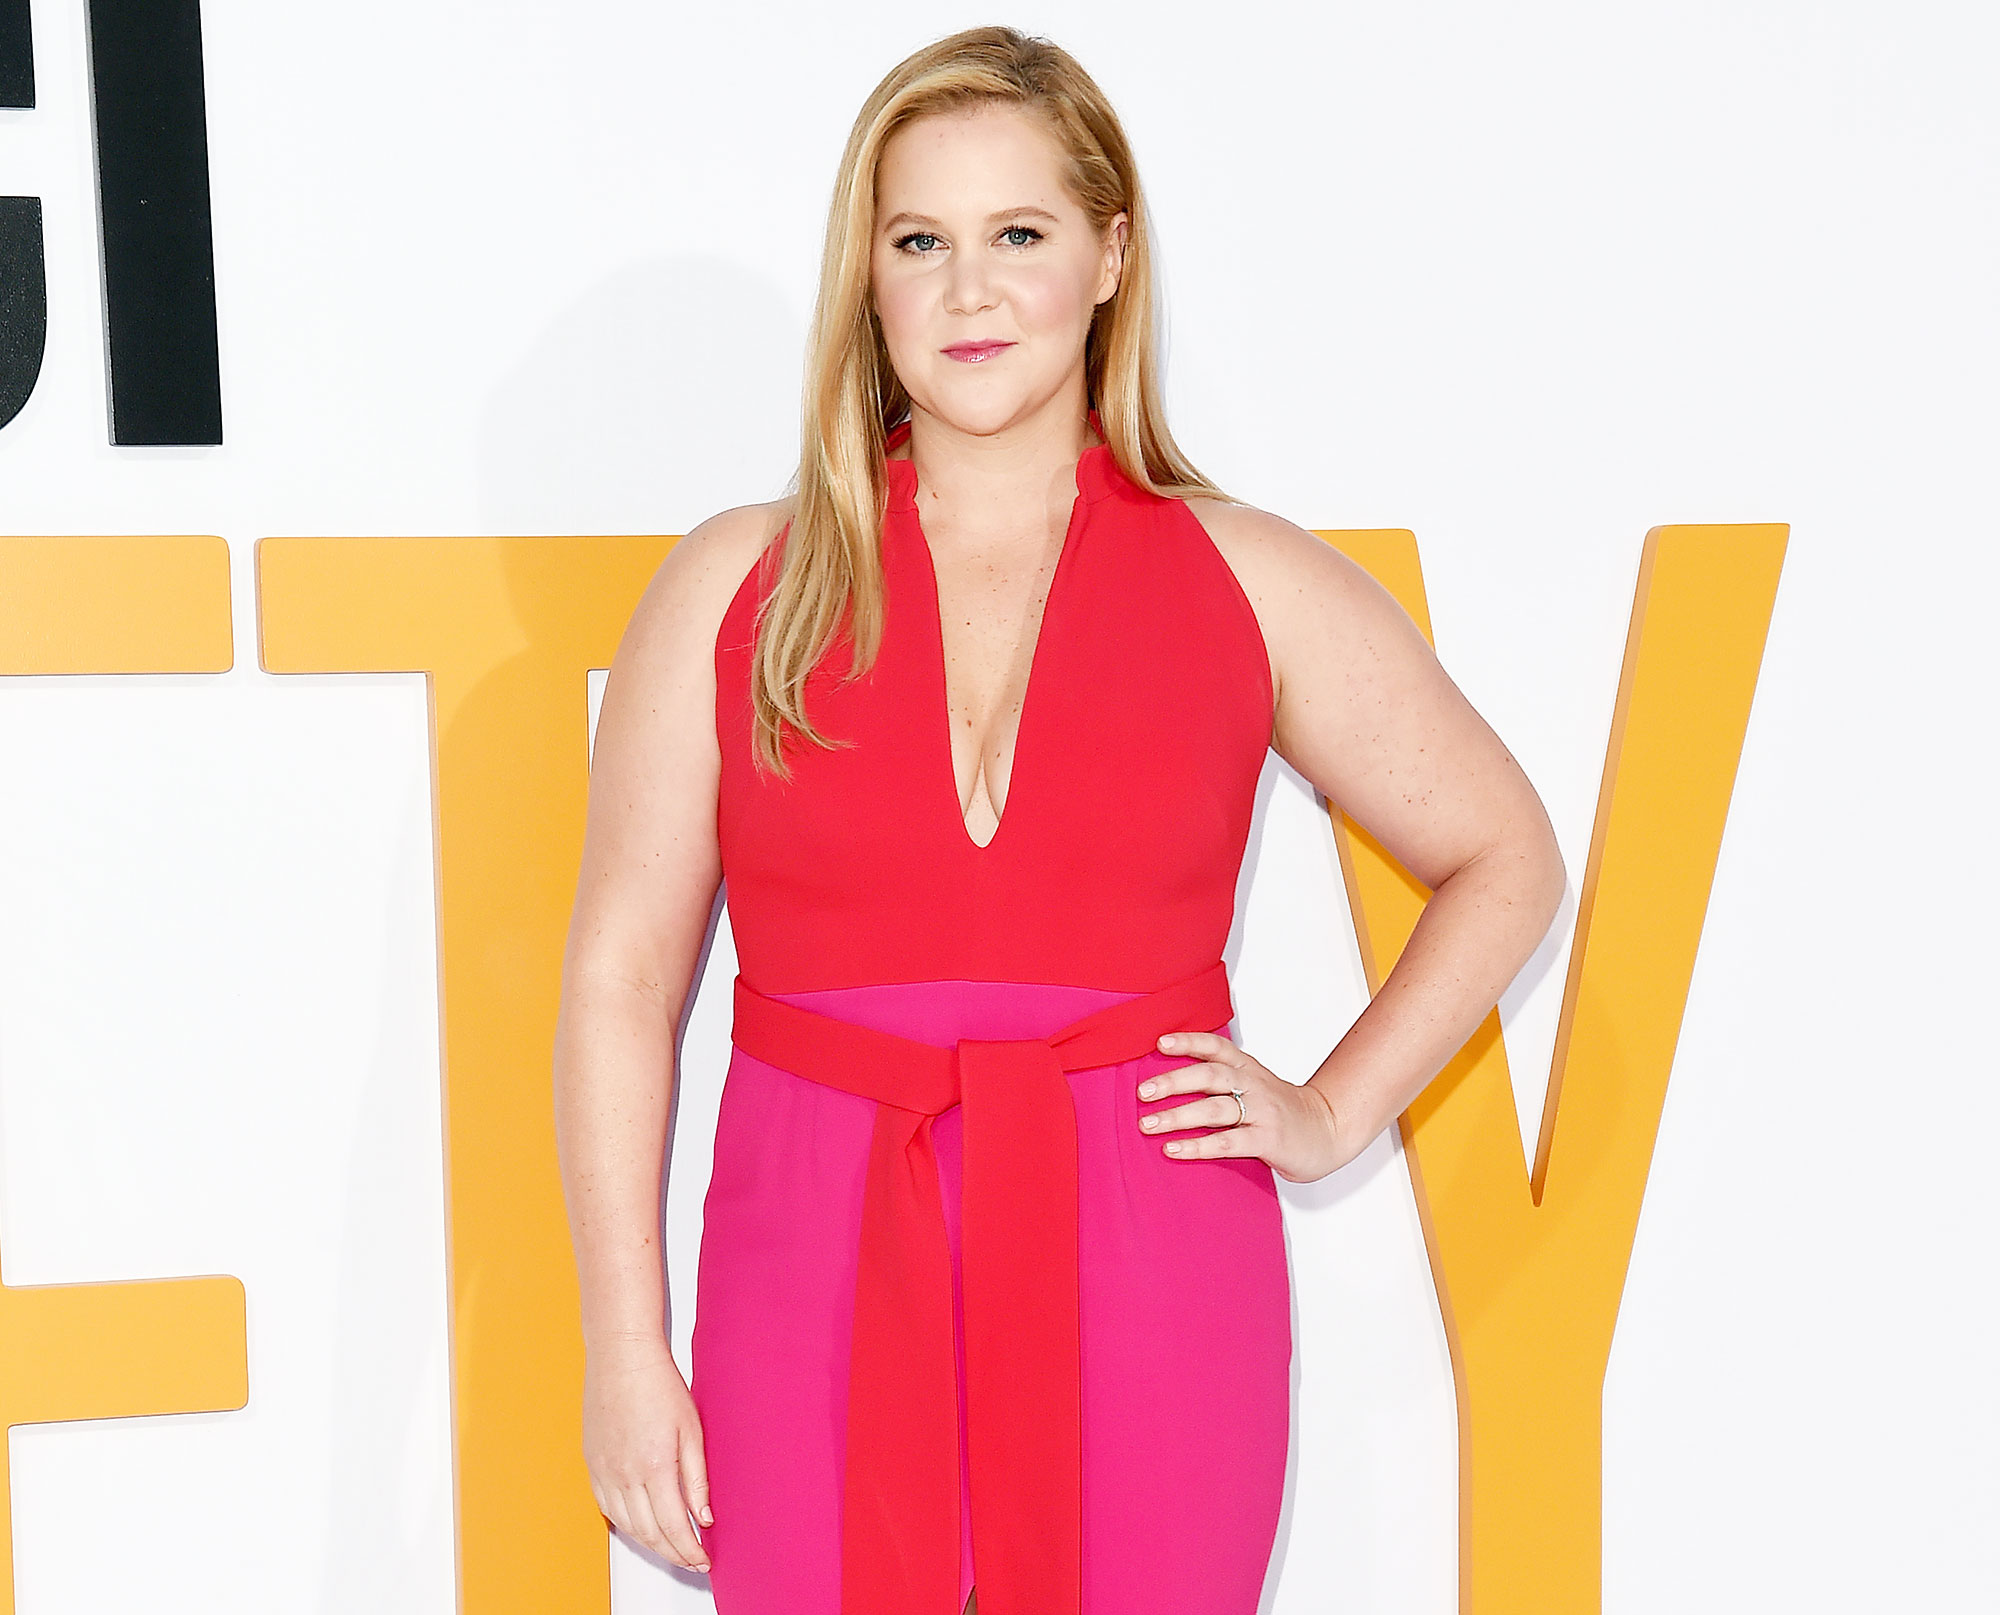 Amy Schumer Returns Comedy After Giving Birth